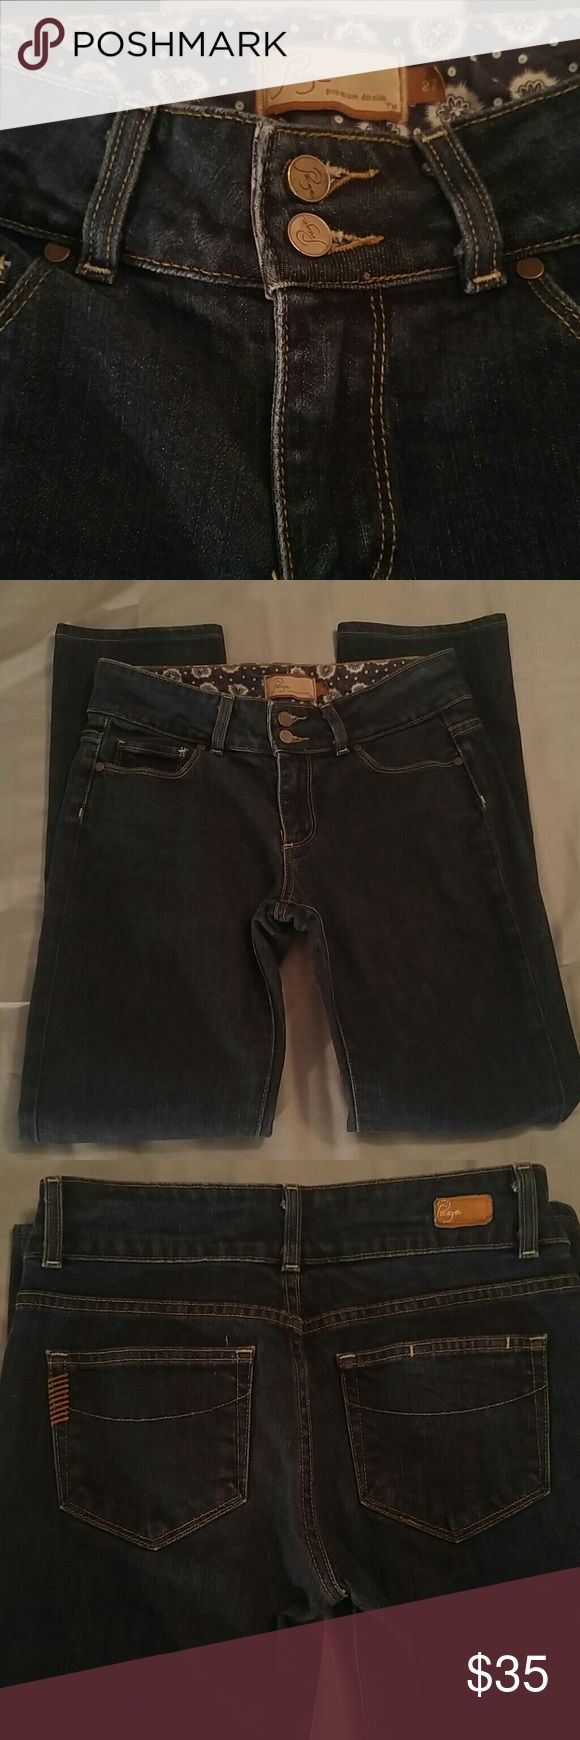 💕REDUCED Pretty Paige Straight cut jeans, size 27 Paige straight cut jeans, size 27, 29 inch inseam, excellent condition Paige Jeans Jeans Straight Leg